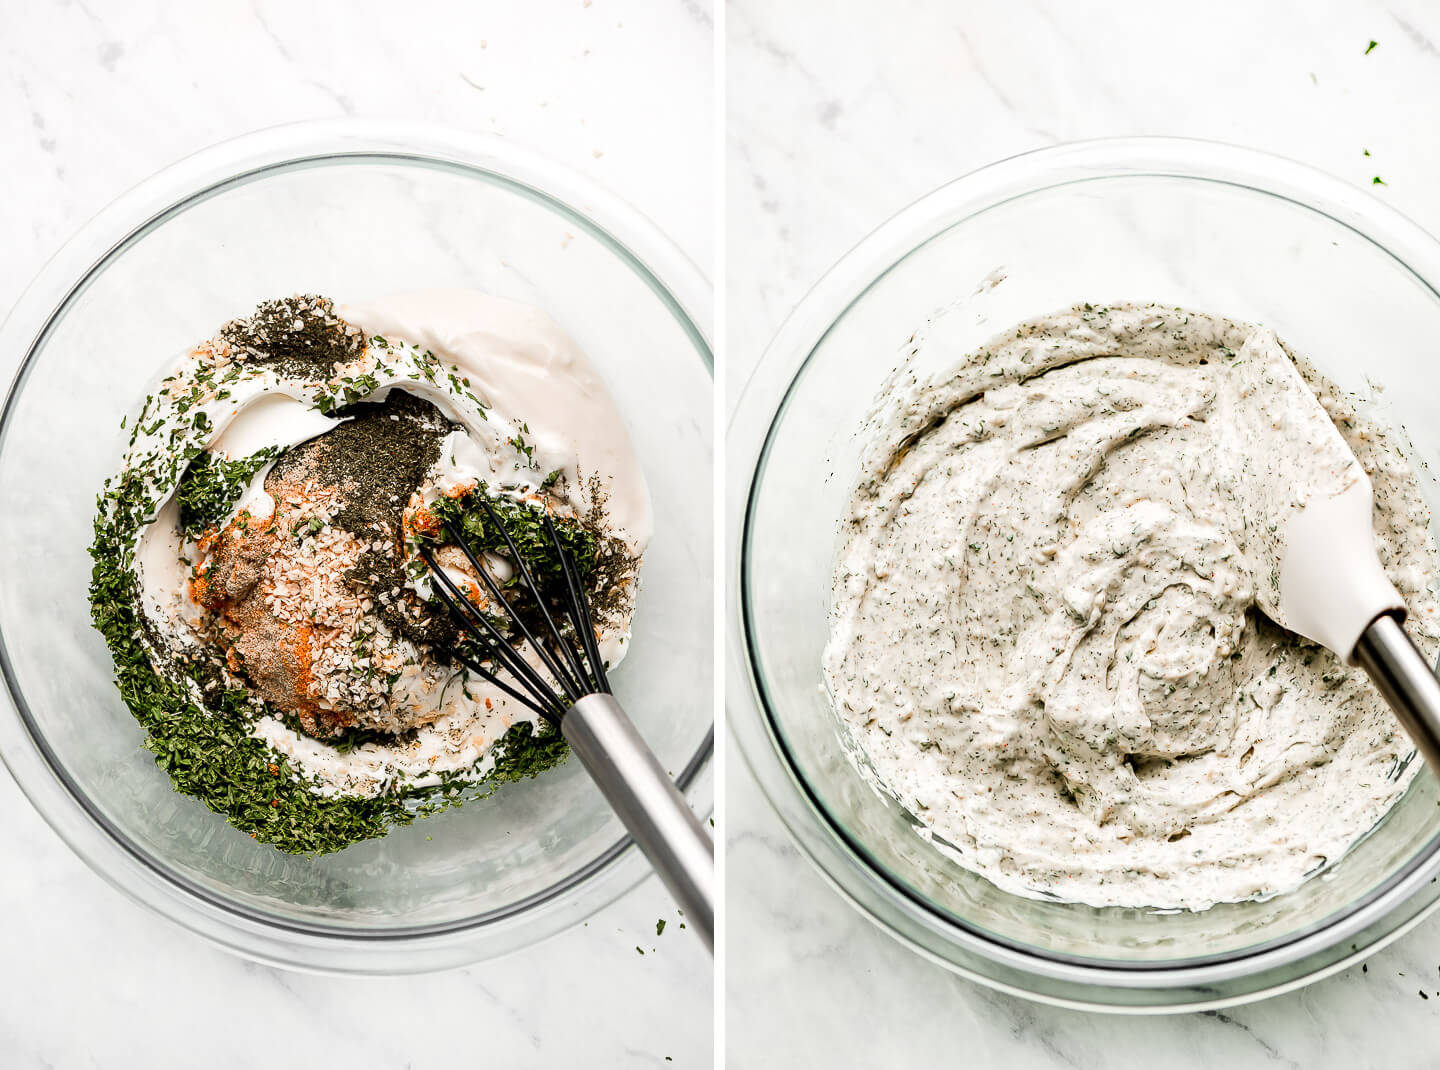 Diptych- mayo, sour cream, spices & herbs in a bowl; dip mixed together.